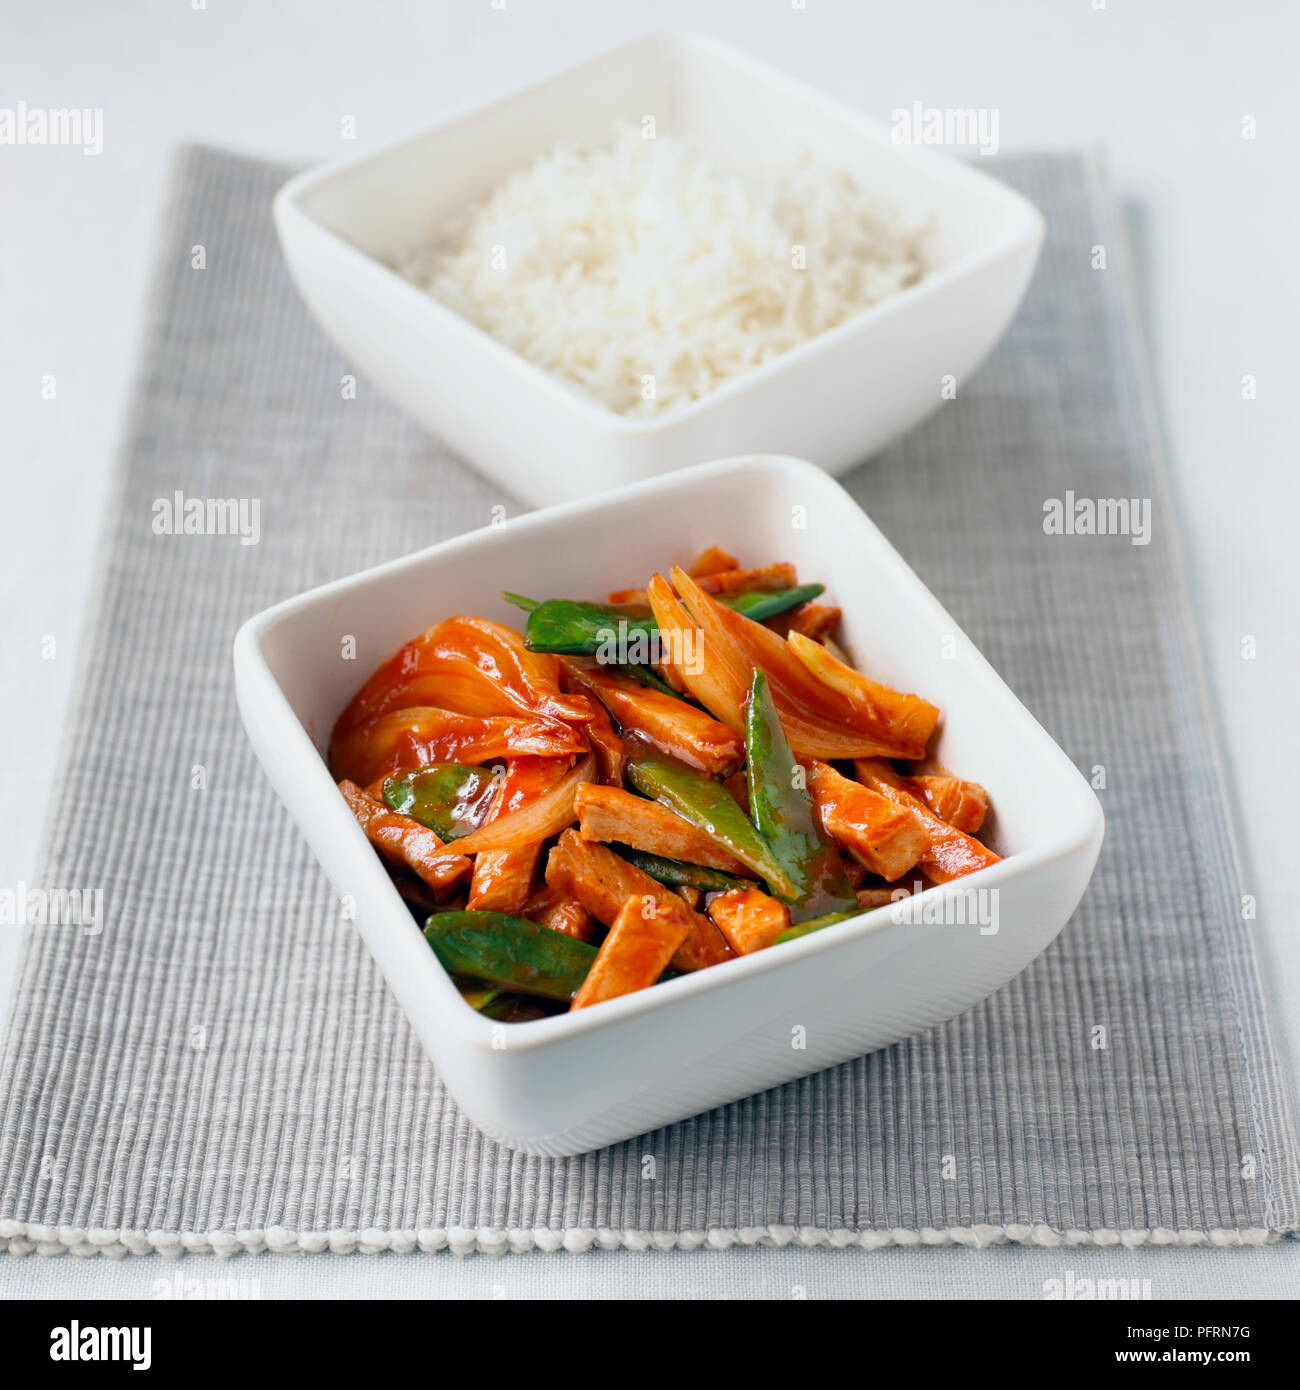 Stir fried sweet and sour pork with mangetout and onion in